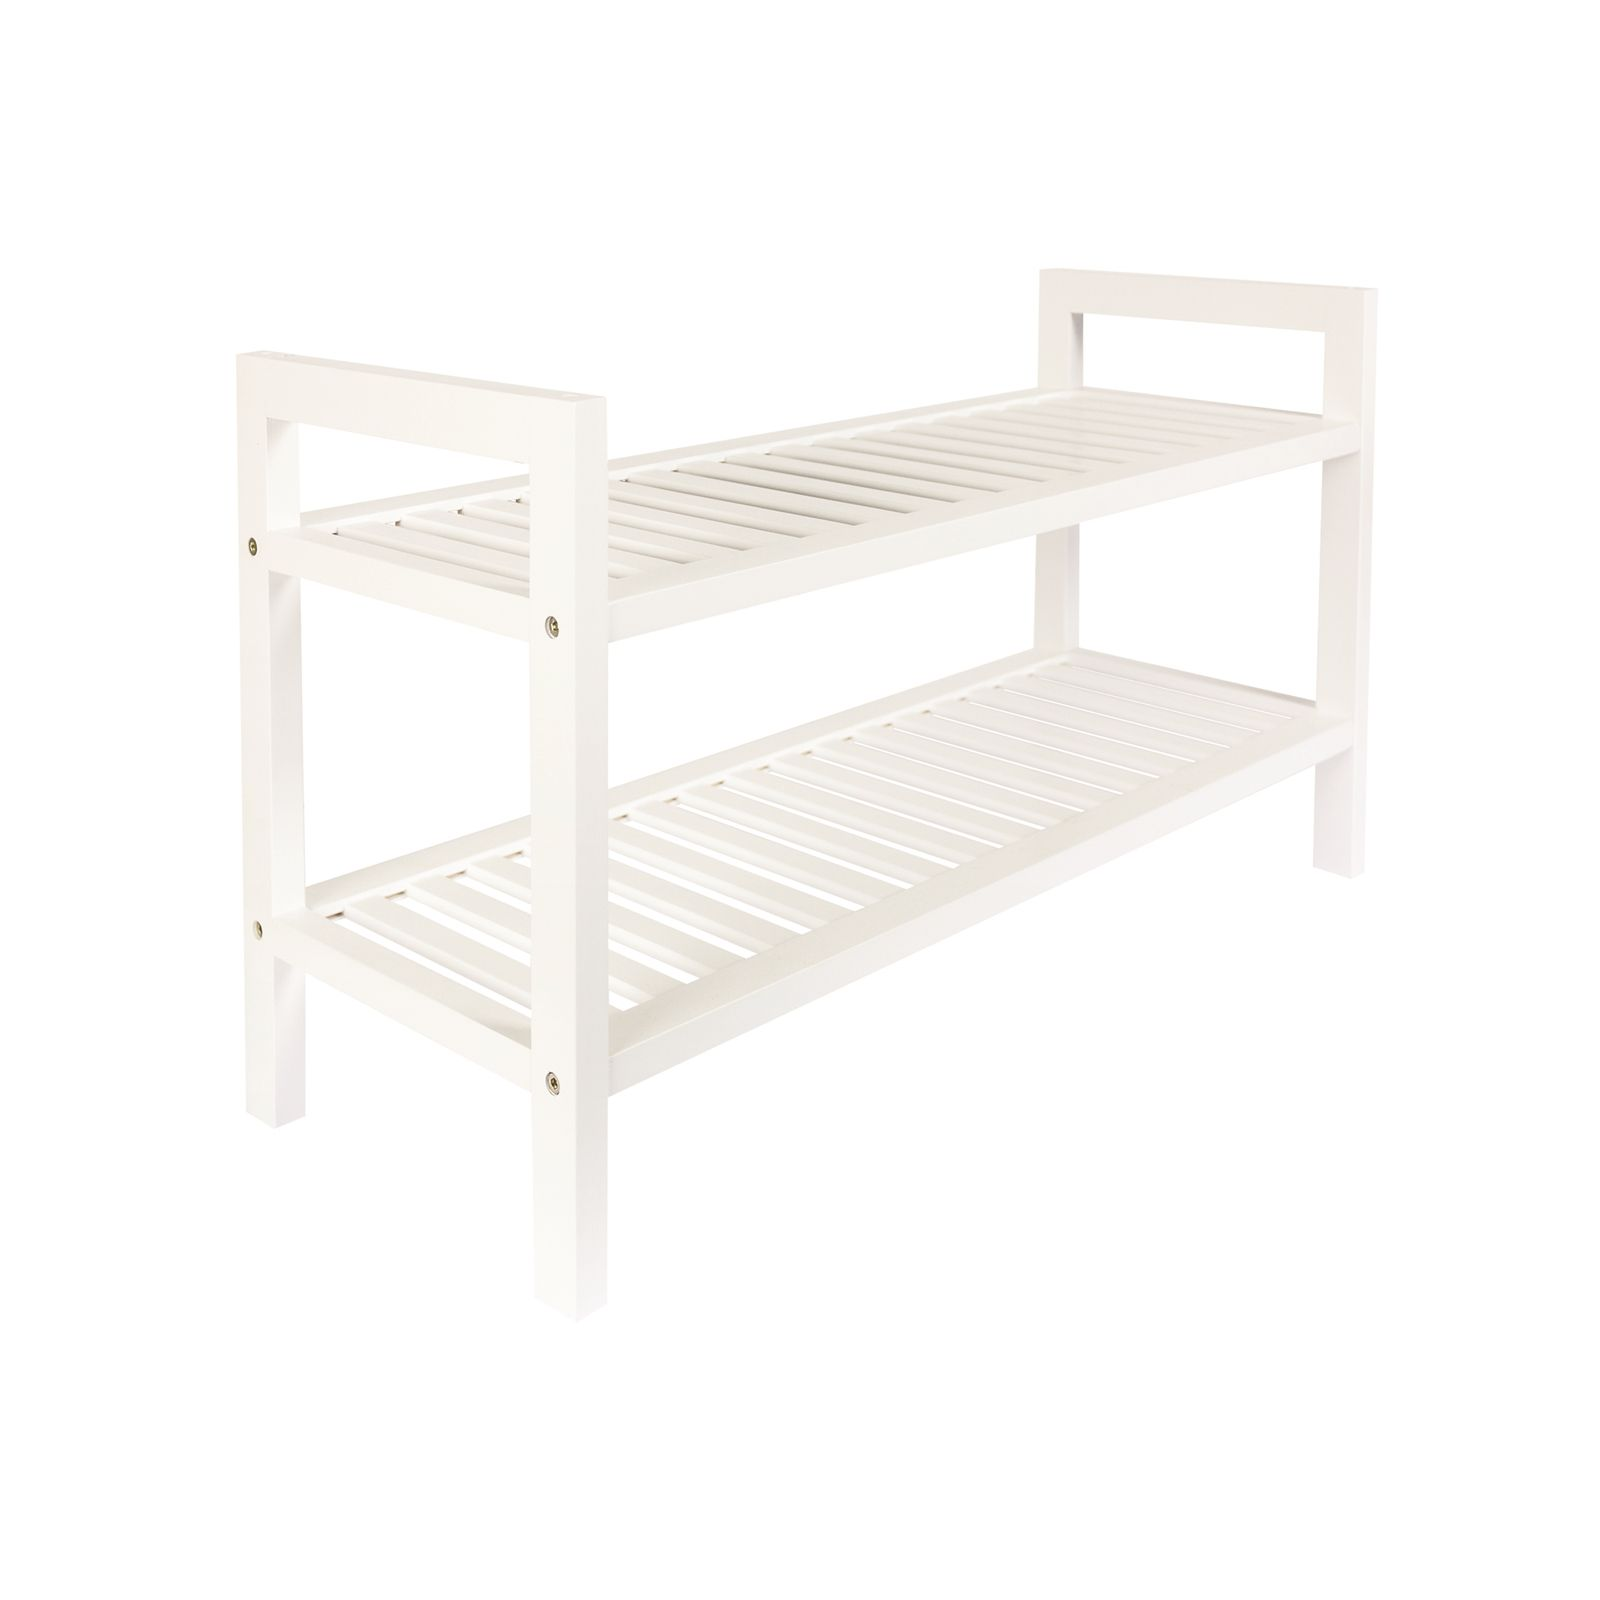 2 Tier White Wooden Shoe Rack At Bunnings Warehouse 29